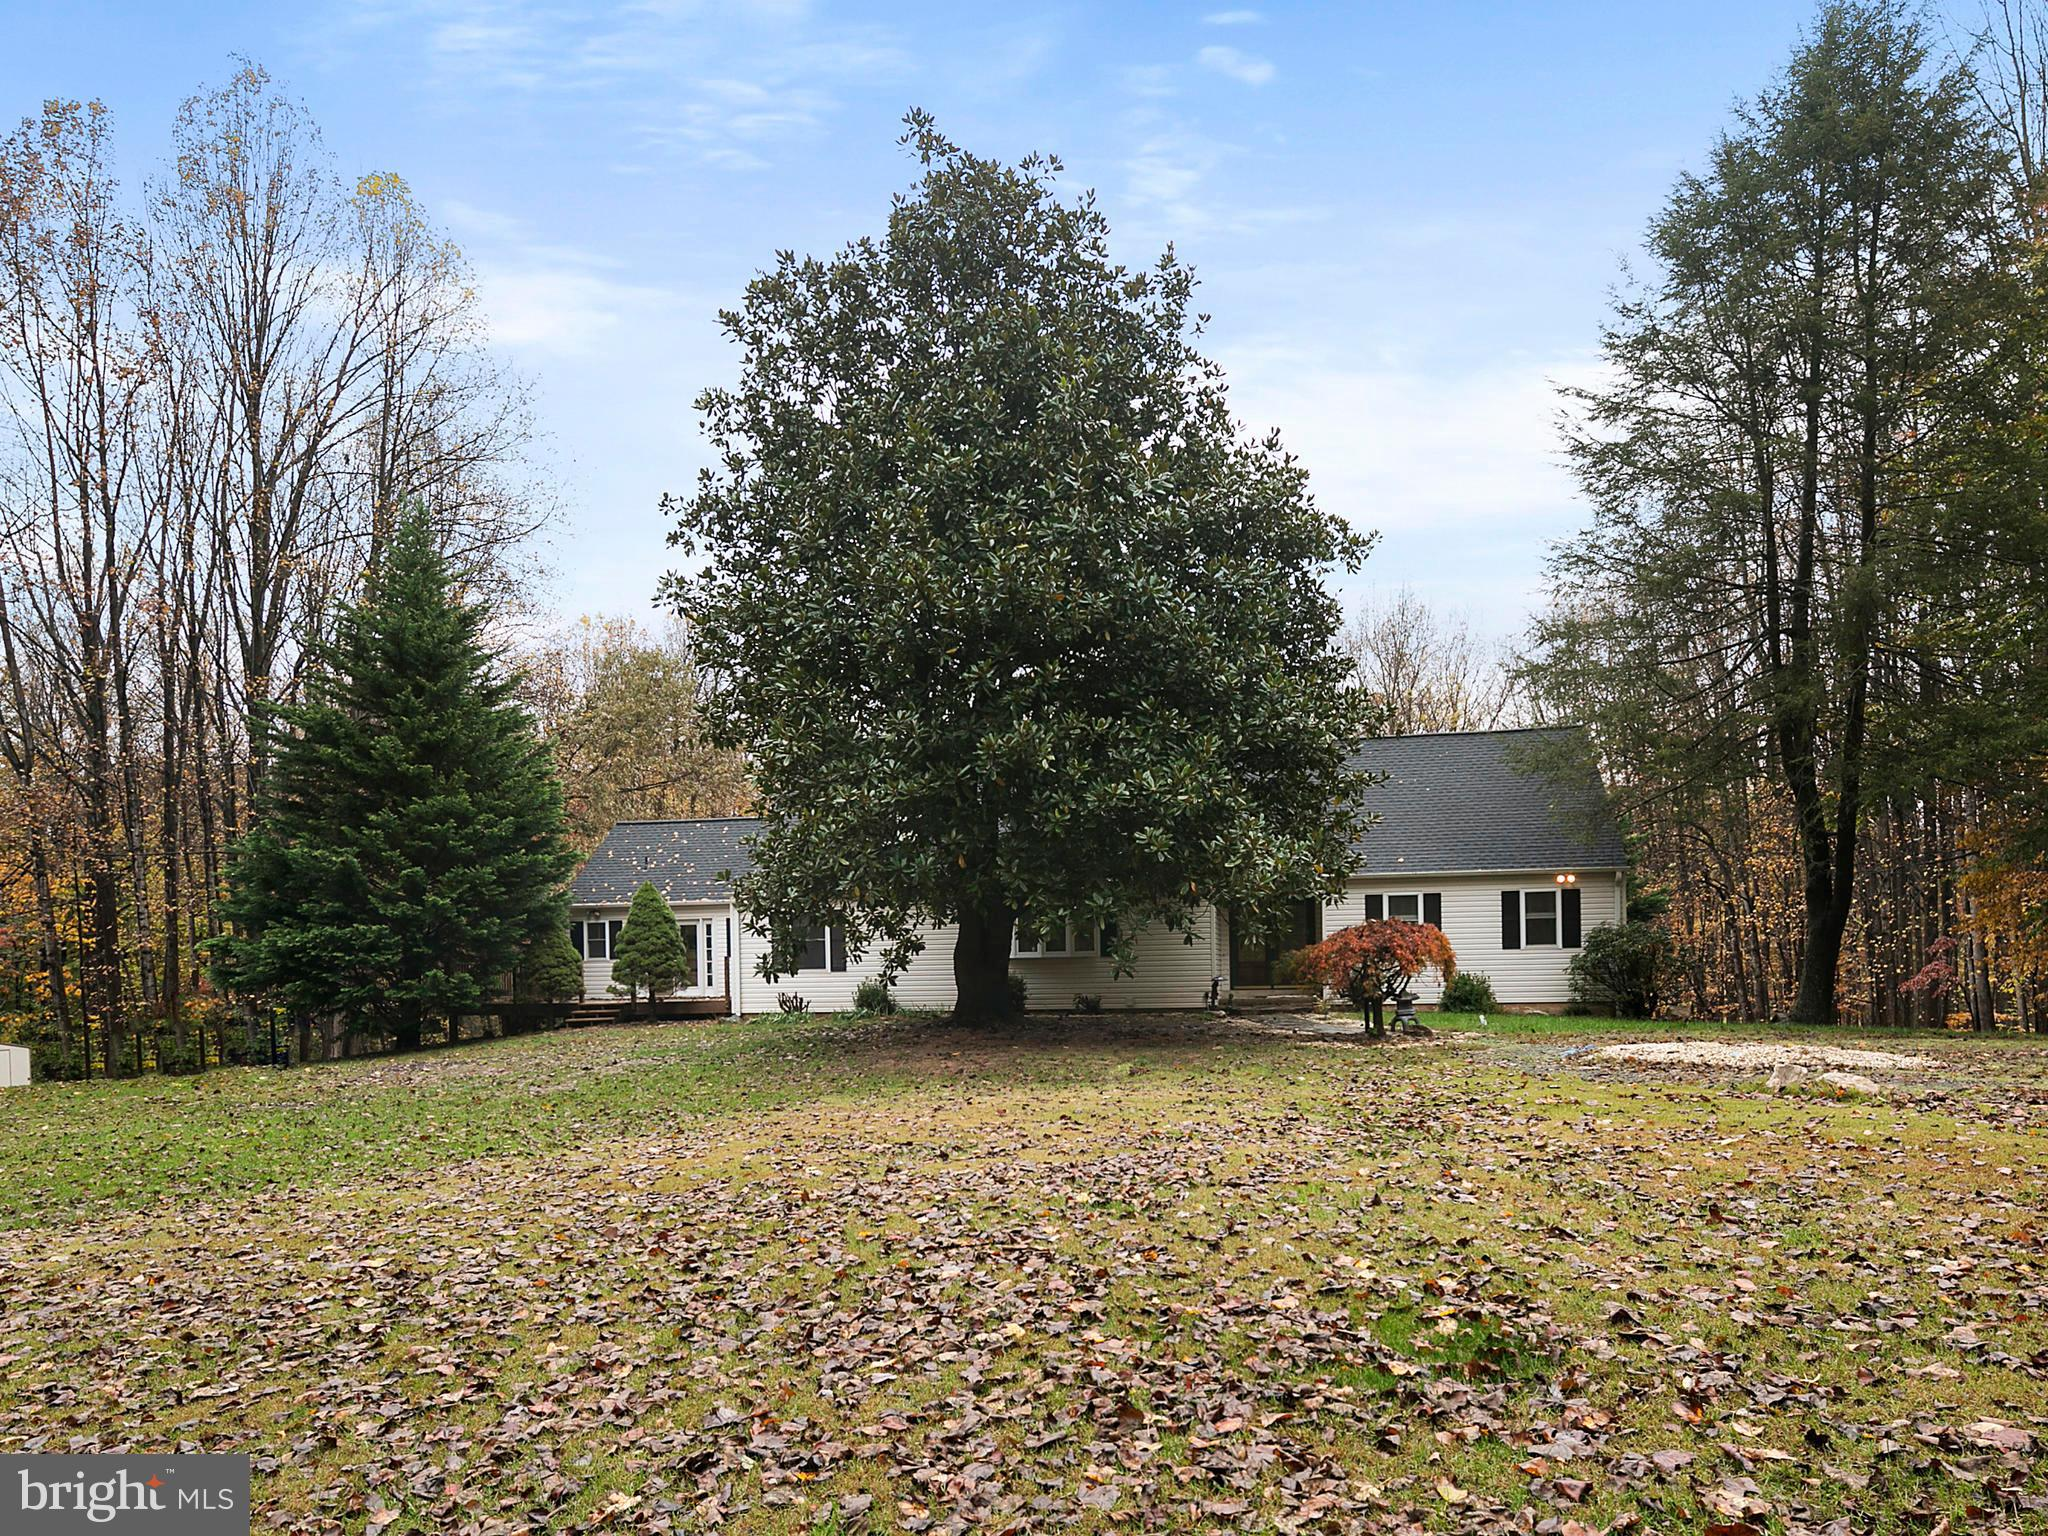 Well-loved 7 bedrooms home on 4 acre land In-law suites with kitchen at fully finished basement Freshly painted spacious living room watching deer in backyard Fireplaces in family room and bedroom New well pump & hot water tank, two heat pumps